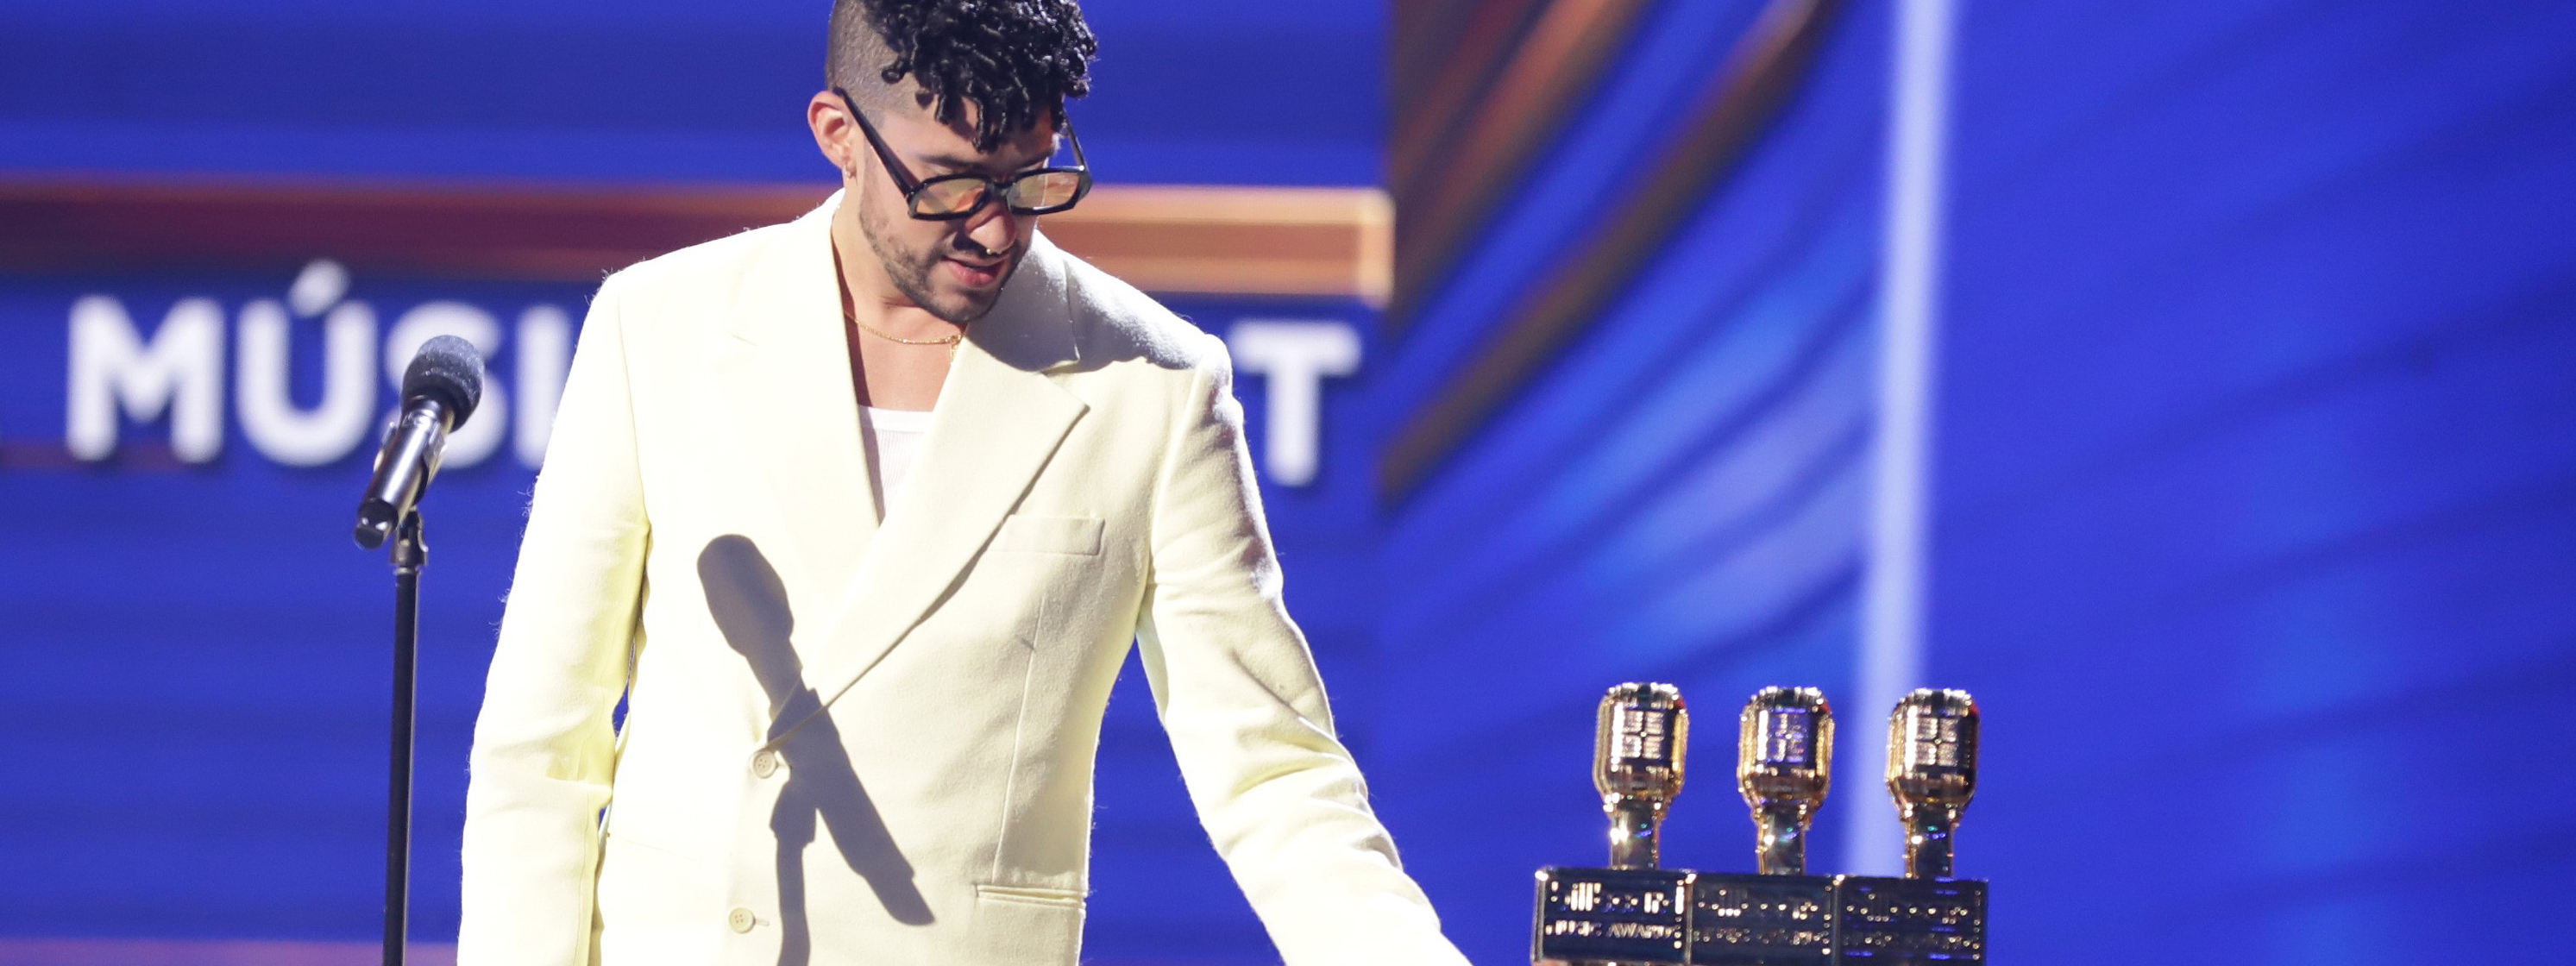 28th Annual Billboard Latin Music Awards Honors Chart-Topping Music of 2021